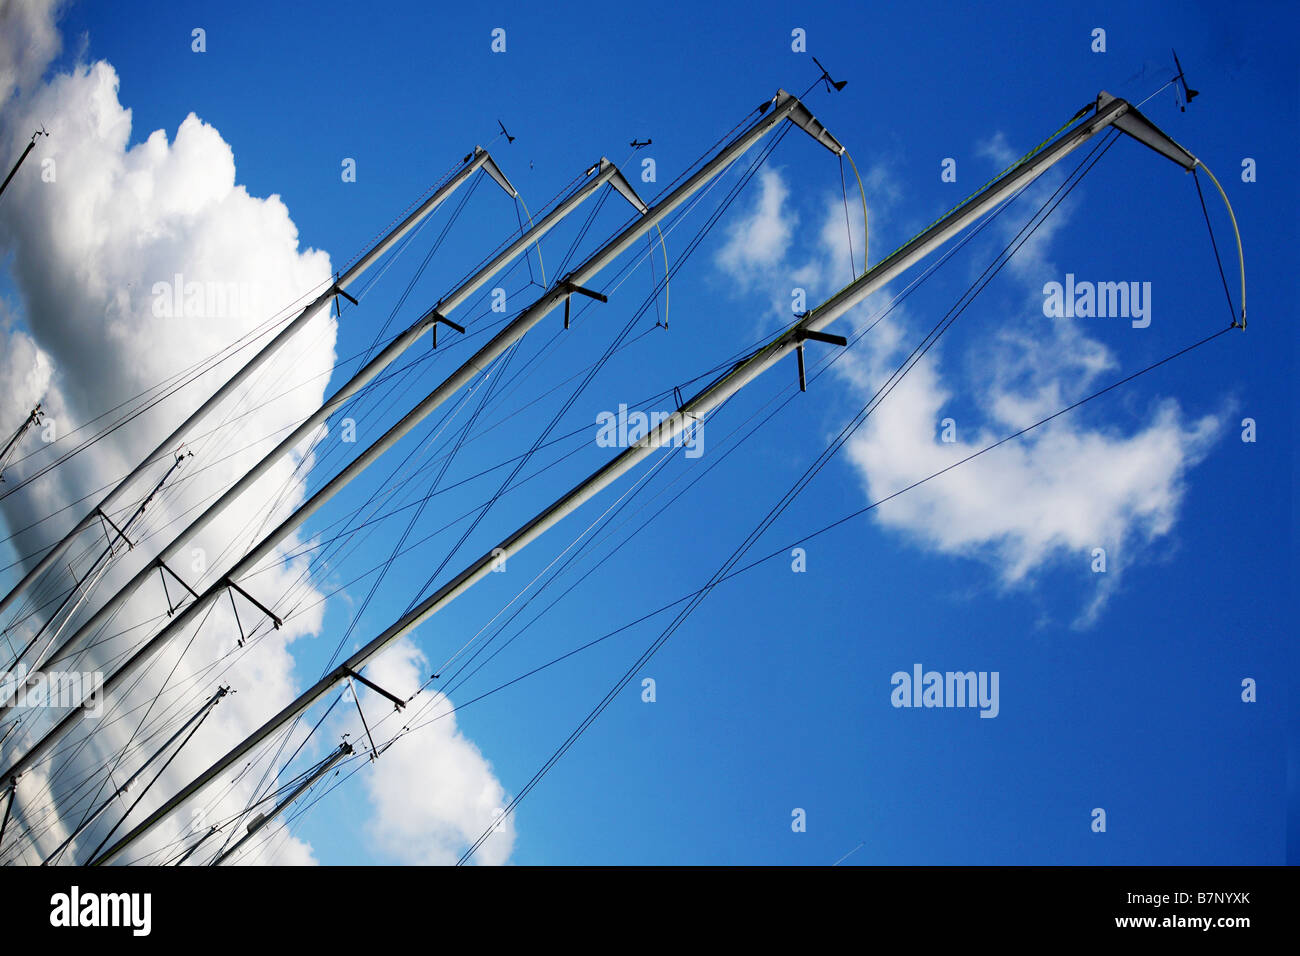 Abstract view of sailing masts against a blue sky - Stock Image